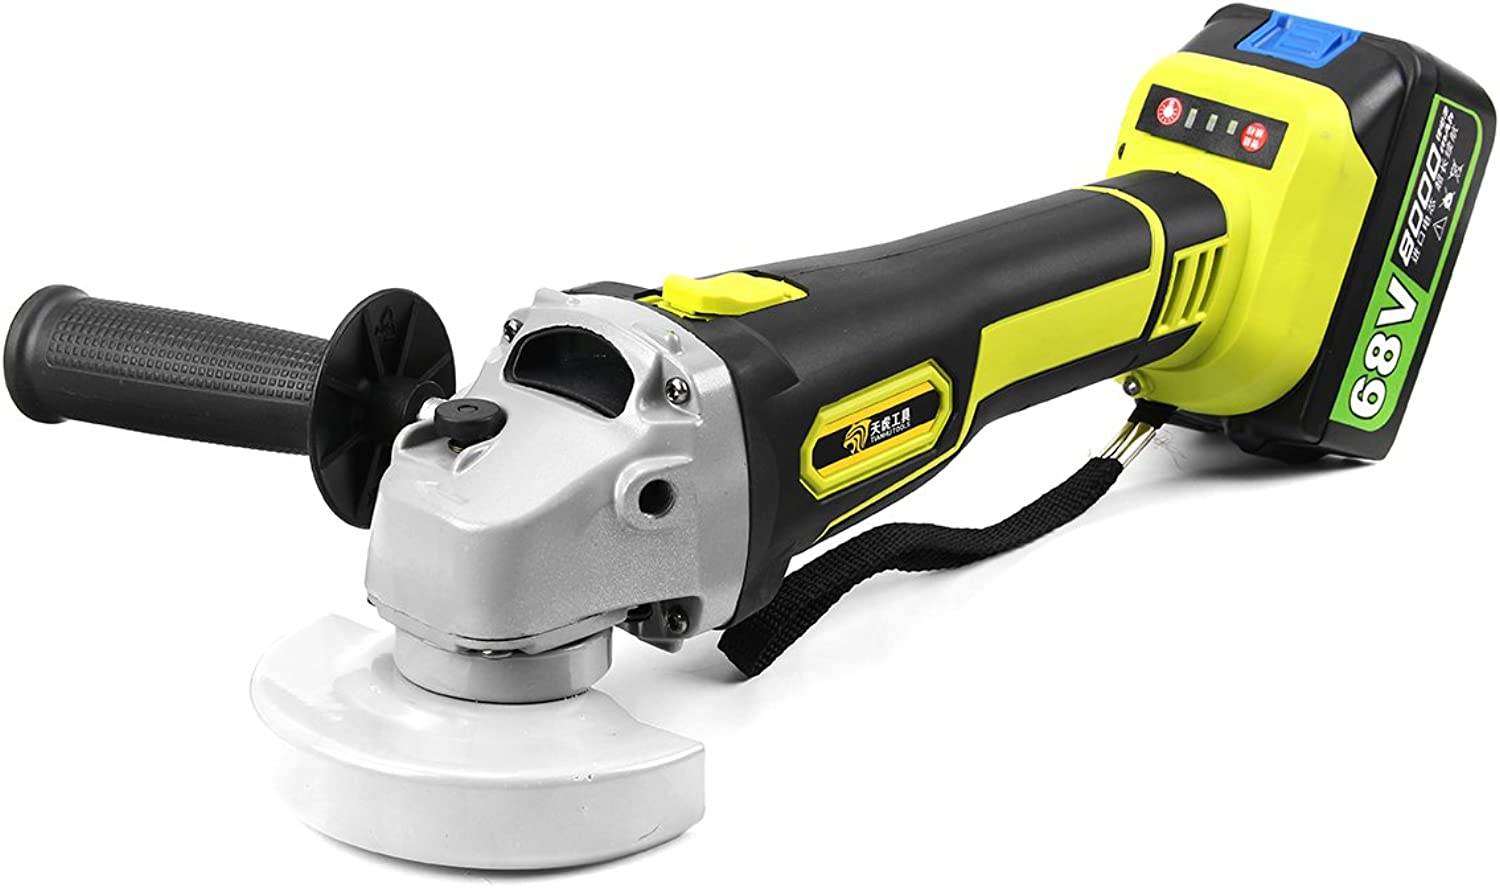 HITSAN 68V 8000mAh Rechargable Cordless Brushless Liion Angle Grinder 100mm One Piece